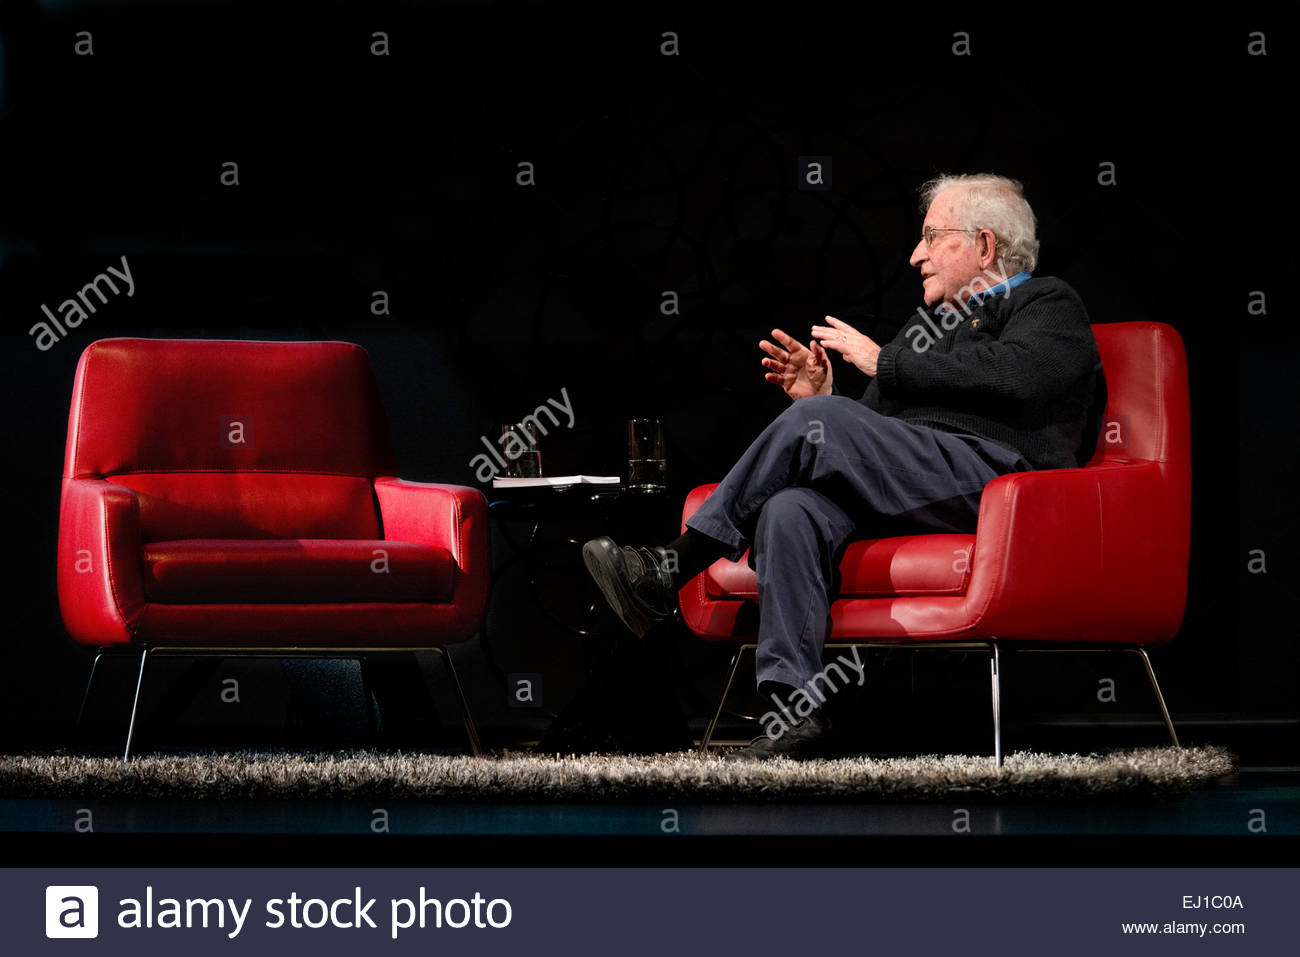 chomsky stock photos chomsky stock images alamy 15th 2015 noam chomsky talking speaking to empty red leather chair black background on